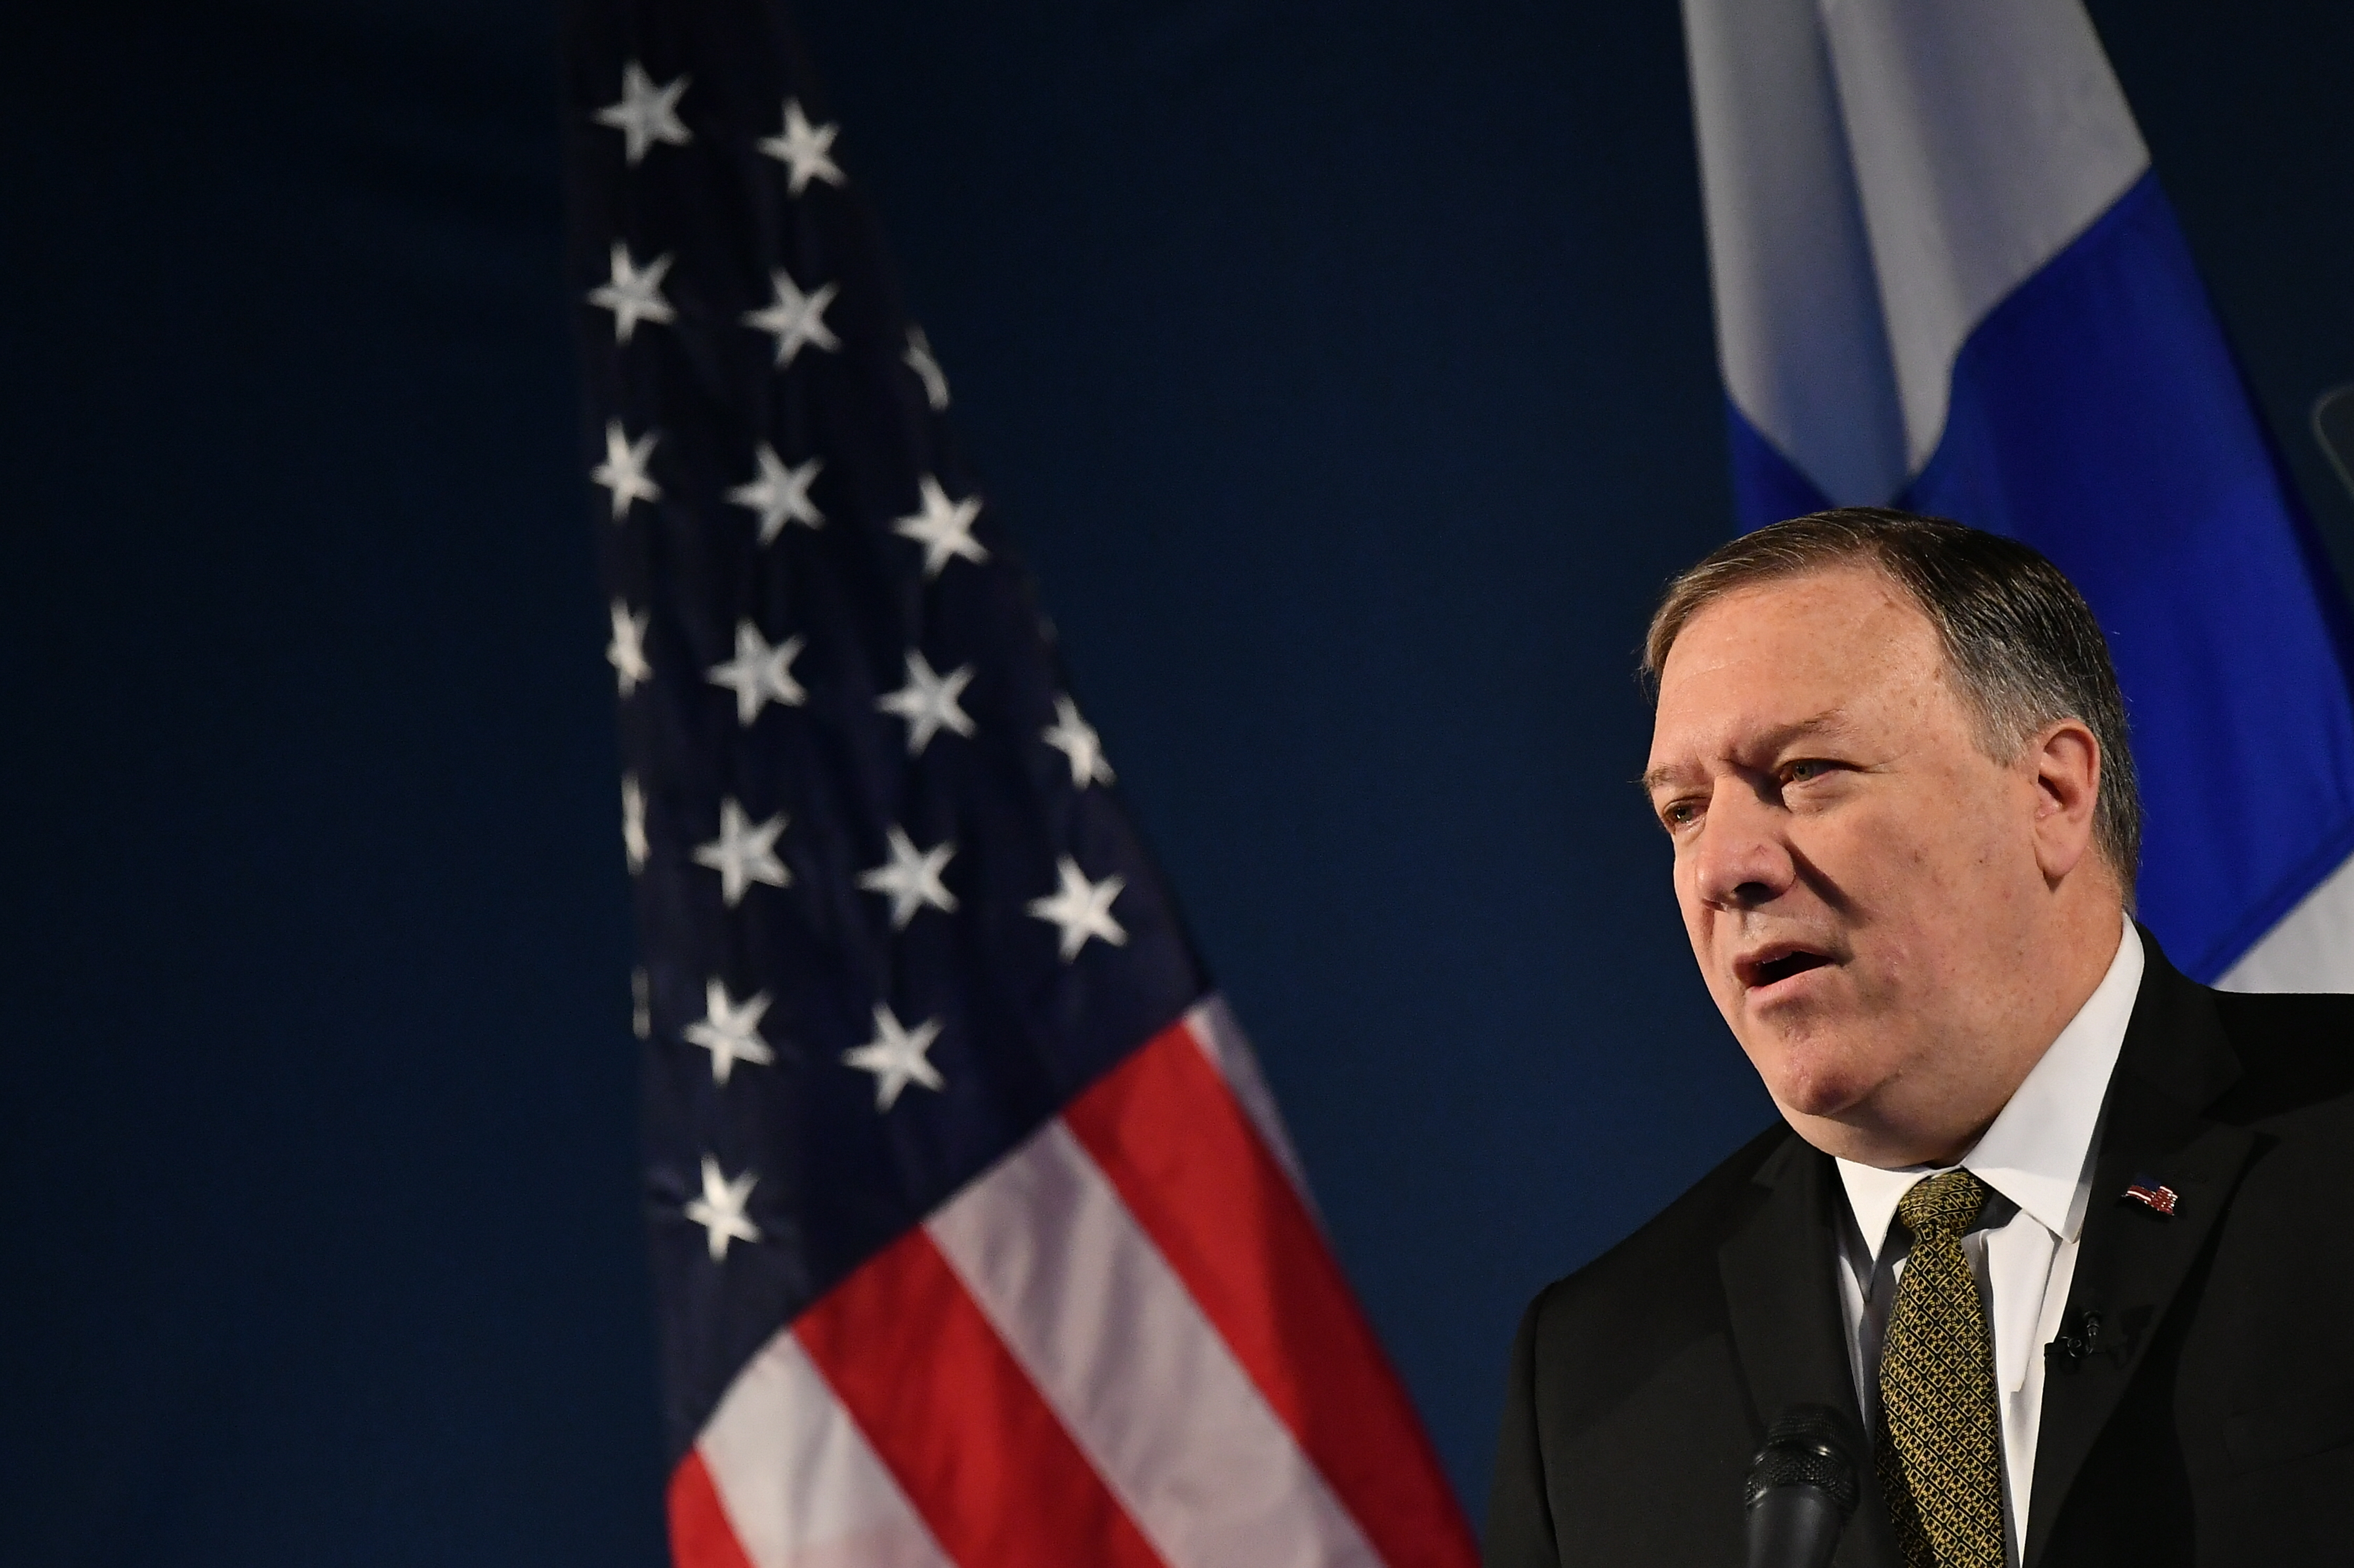 Secretary of State Mike Pompeo speaks on Arctic policy at the Lappi Areena in Rovaniemi, Finland, May 6, 2019.